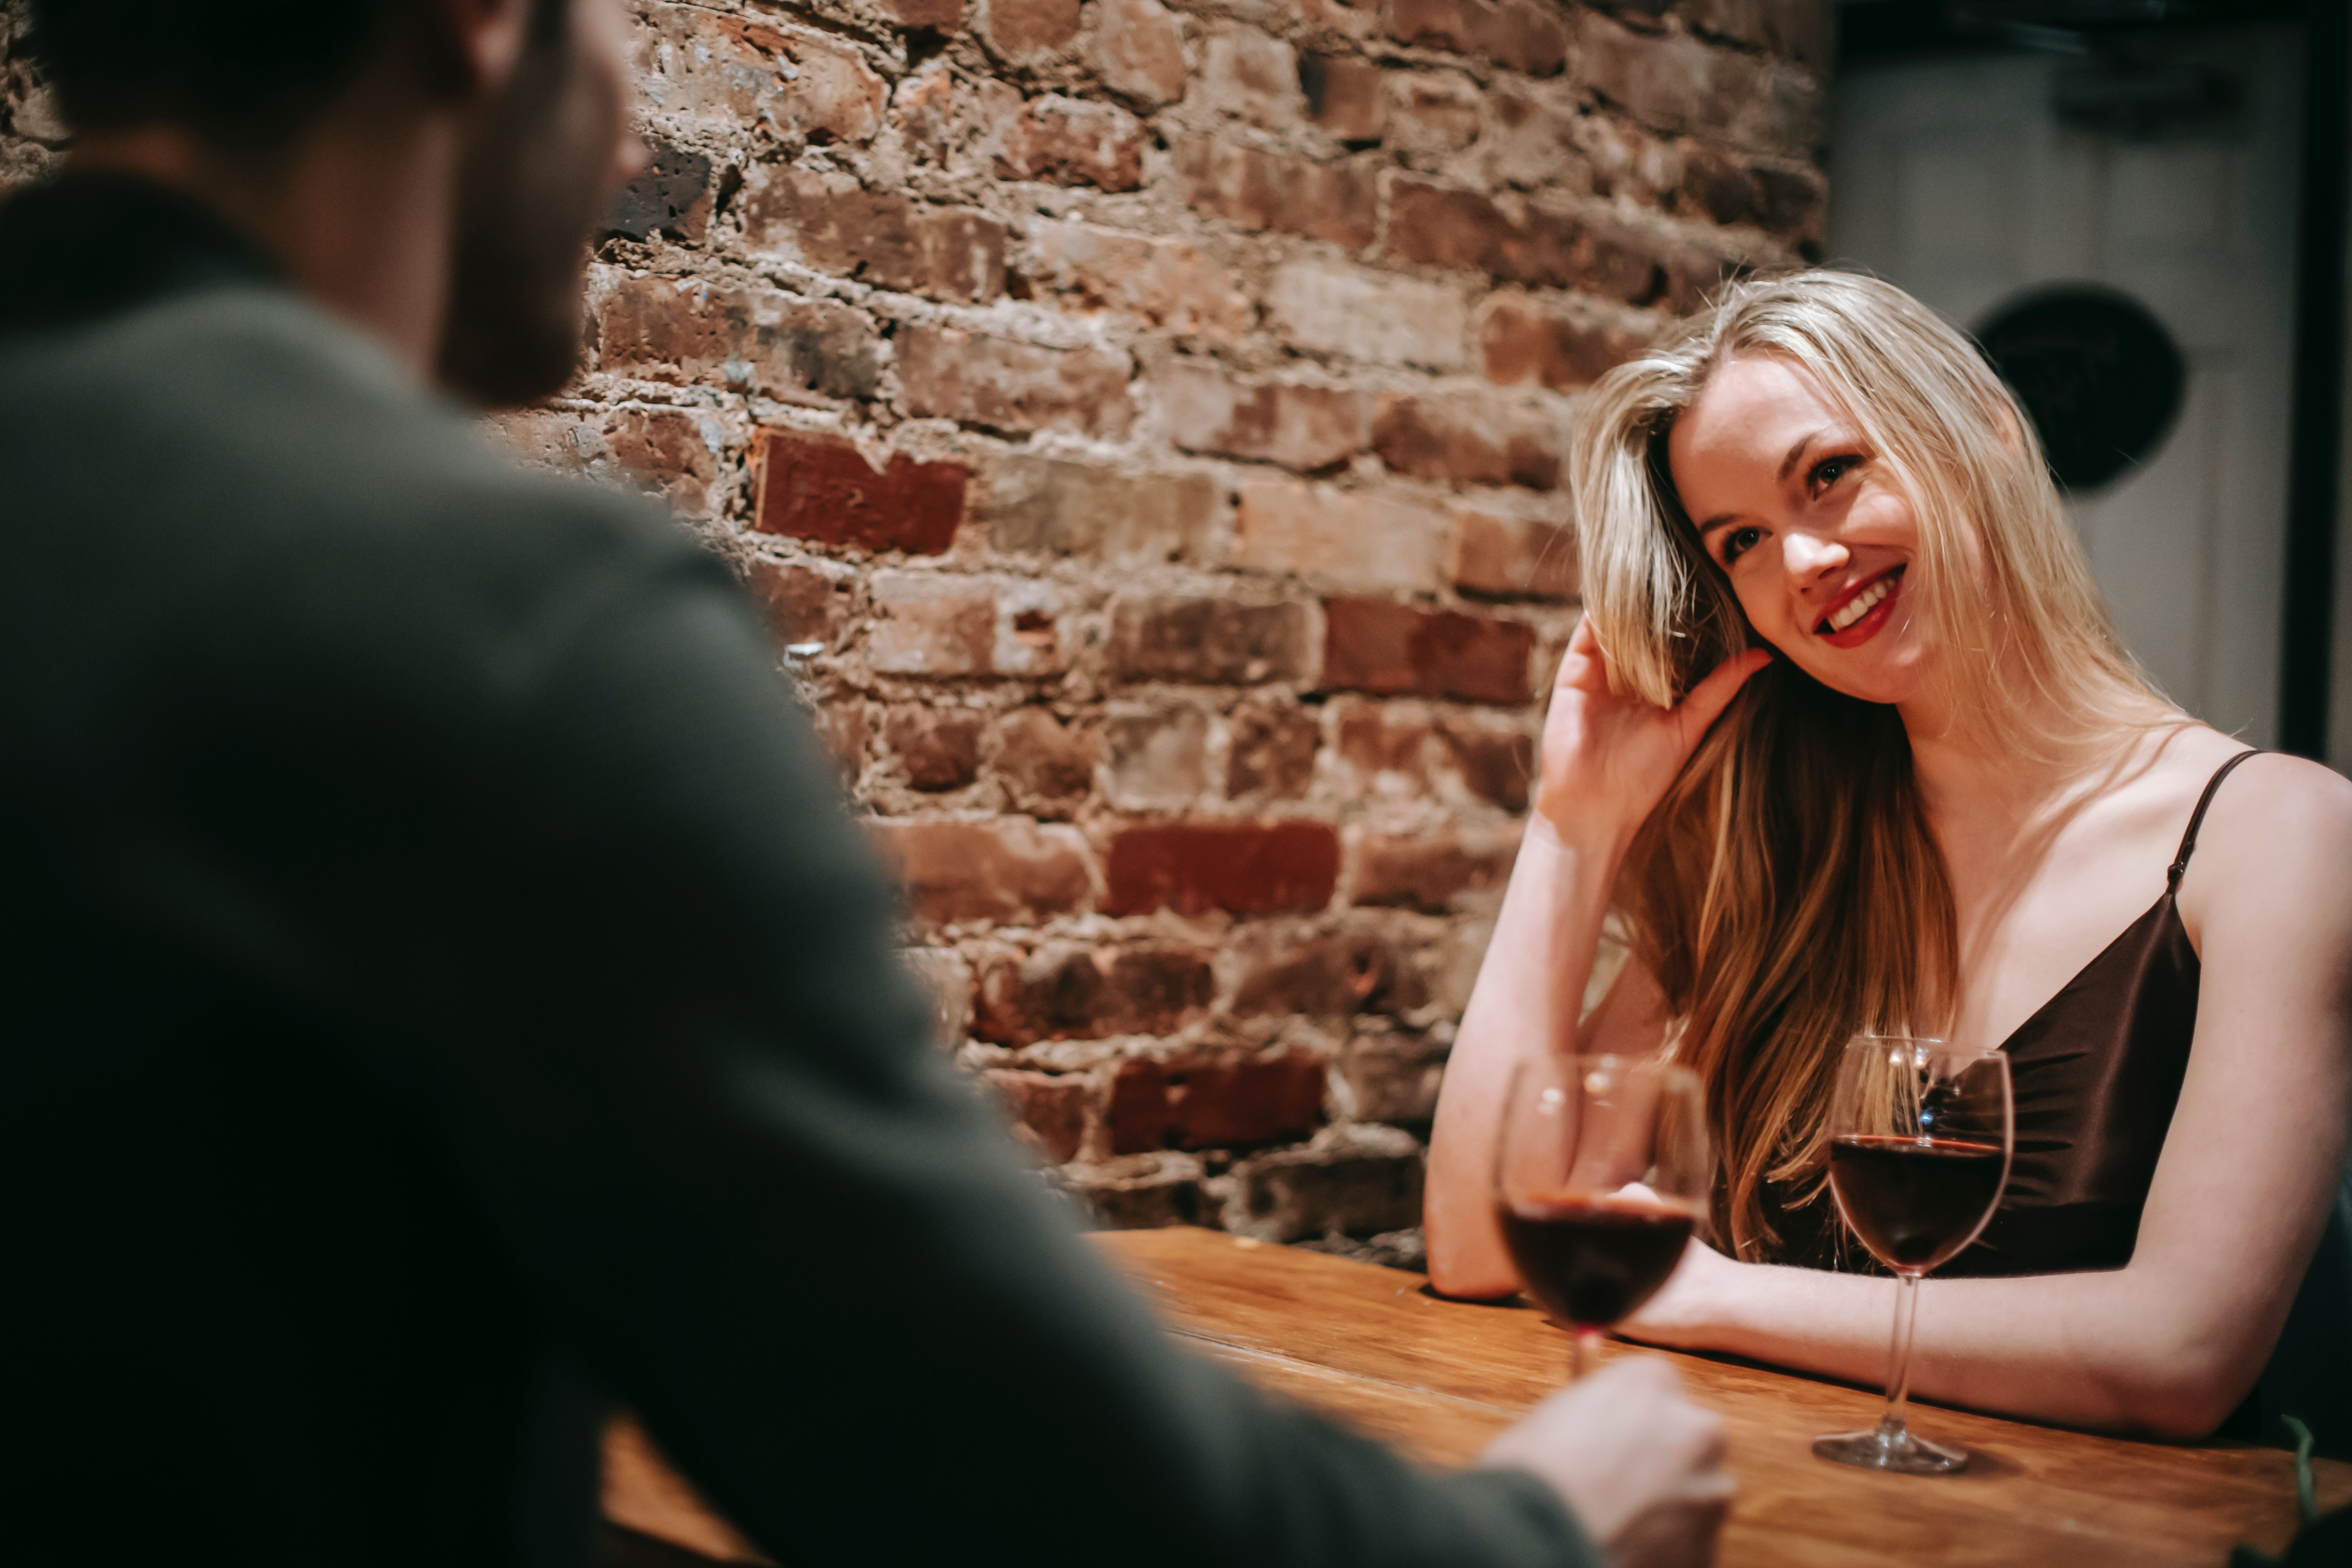 Woman drinking wine with a man while playing with her hair and smiling at him